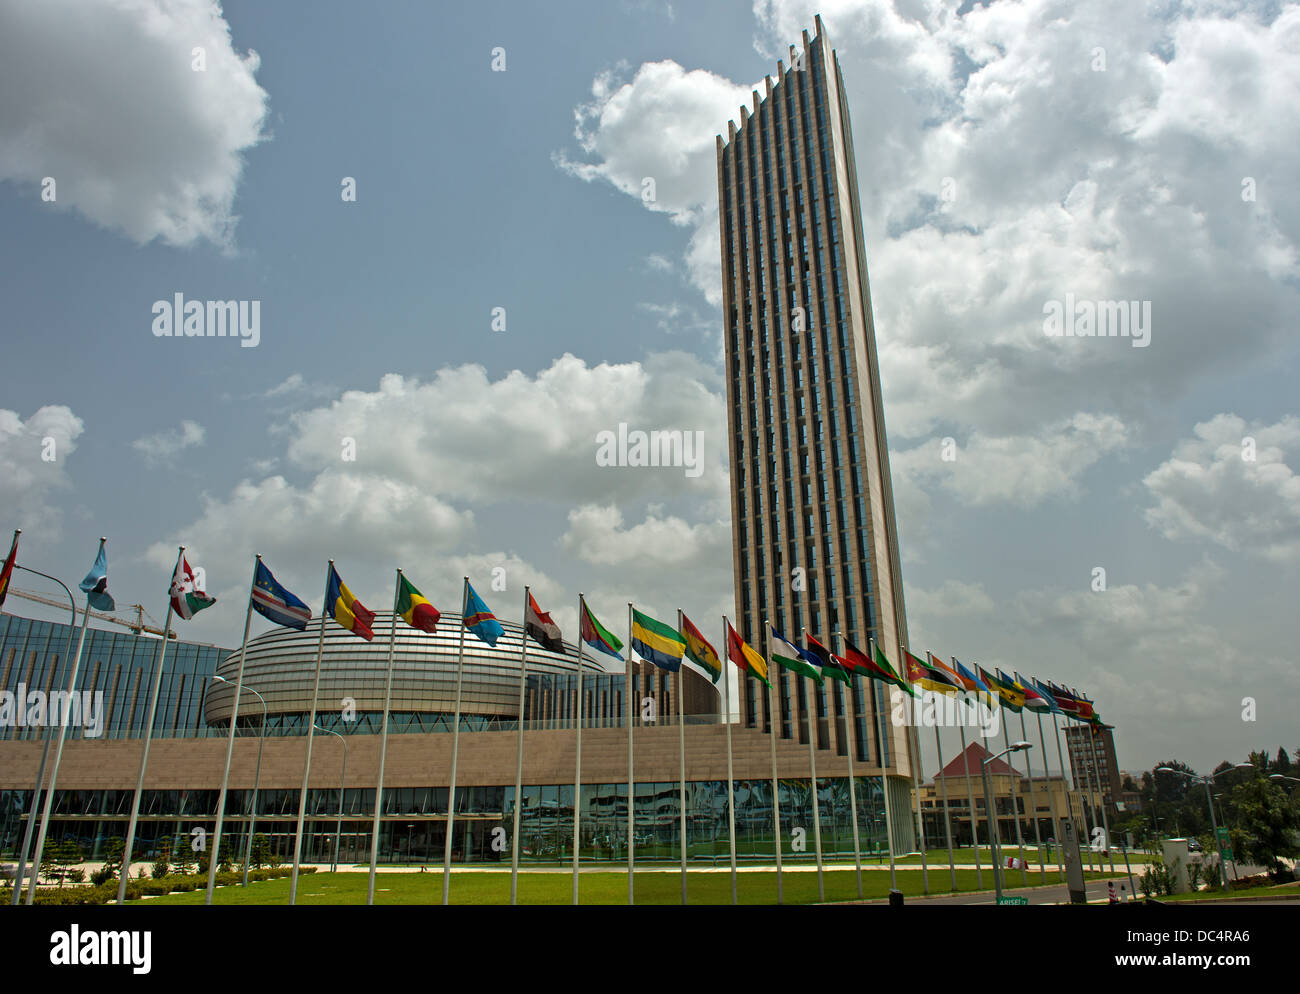 Skyscraper of the African Union Conference Center and Office Complex (AUCC), Addis Ababa, Ethiopia Stock Photo